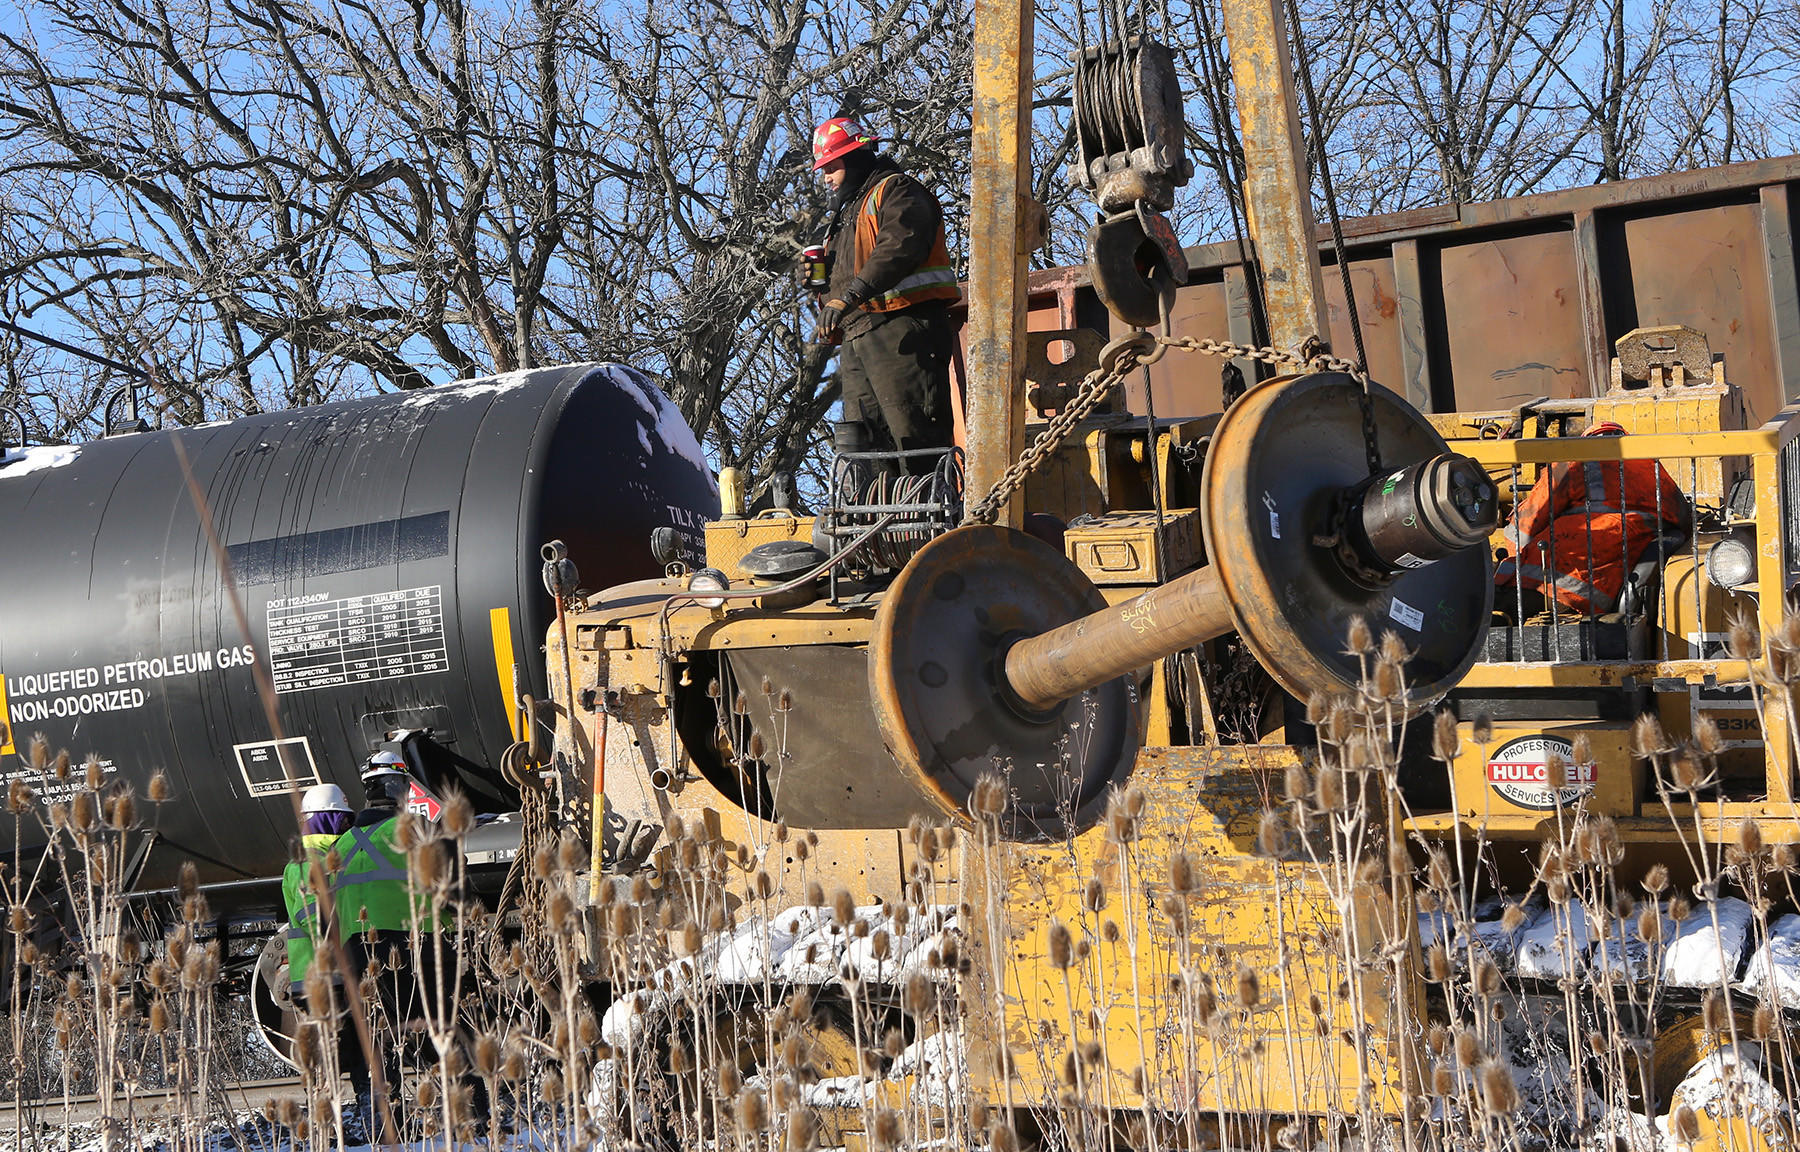 A Canadian National Railway worker works at the site of a train derailment in Mundelein. The train derailed near Winchester Road in Mundelein shortly before 1 a.m. Tuesday, according to railroad officials and police. The car was carrying plastic pellets.